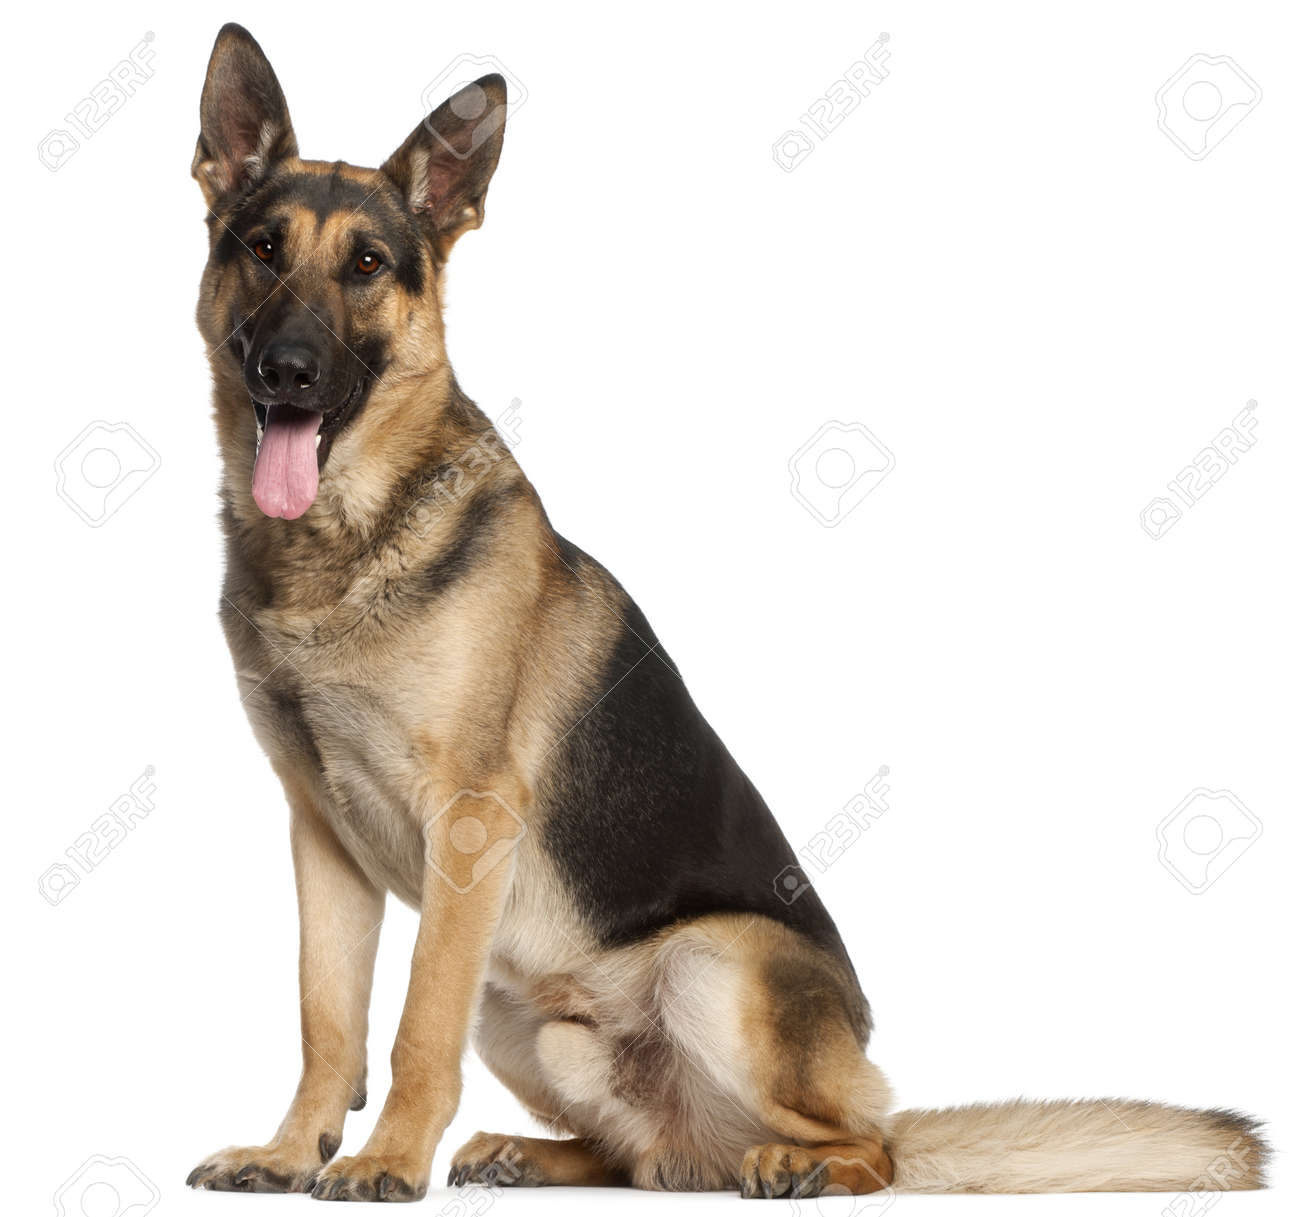 German Shepherd Dog, 2 and a half years old, sitting in front of white background Stock Photo - 9750029